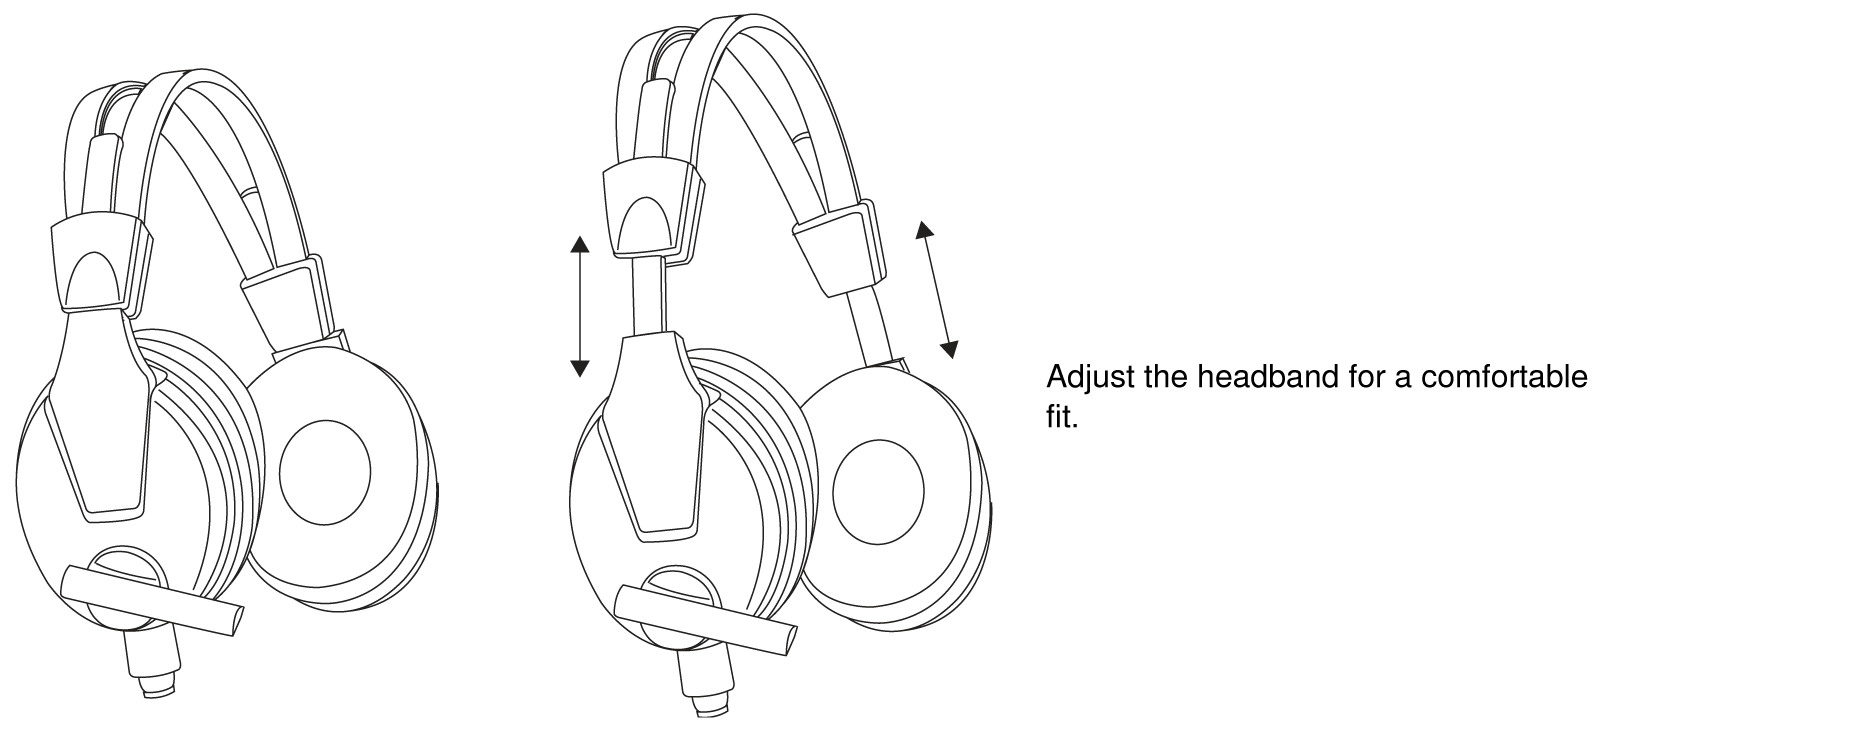 hight resolution of wearing the headset